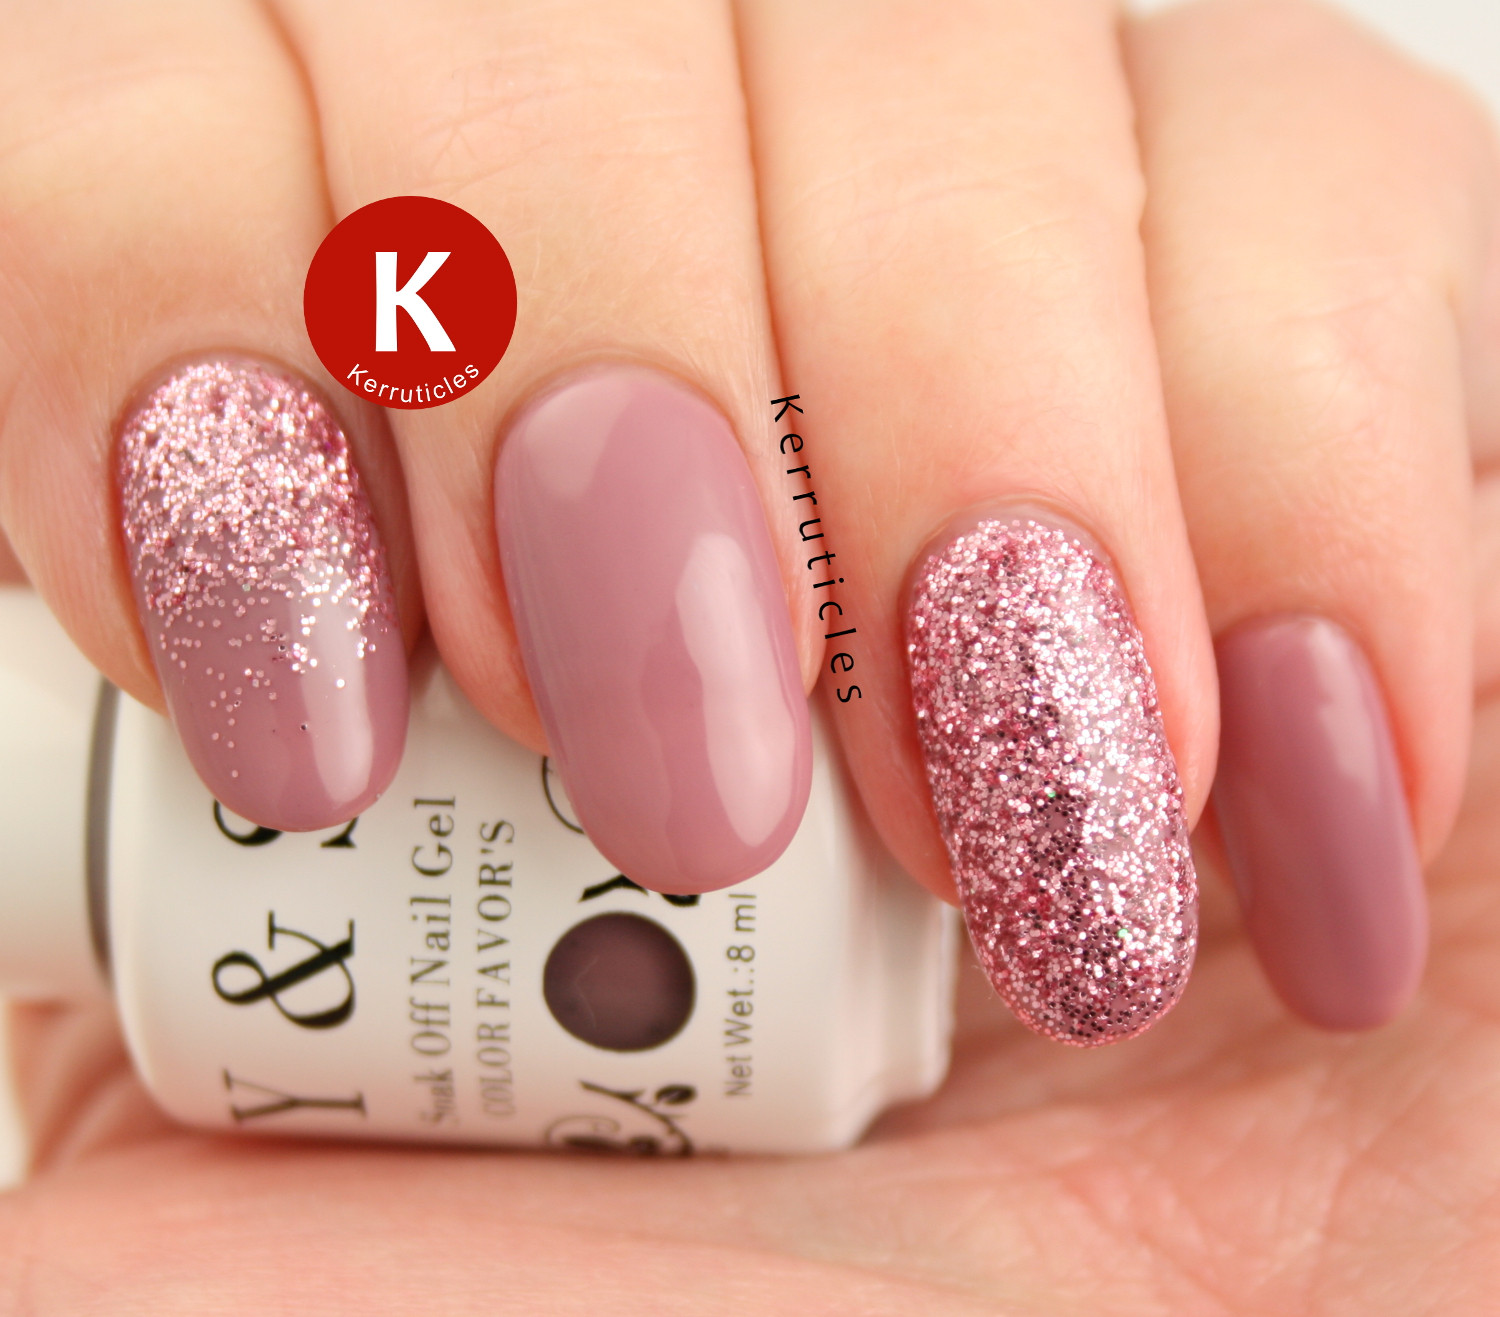 Glitter Gel Nails Pictures  Kerruticles